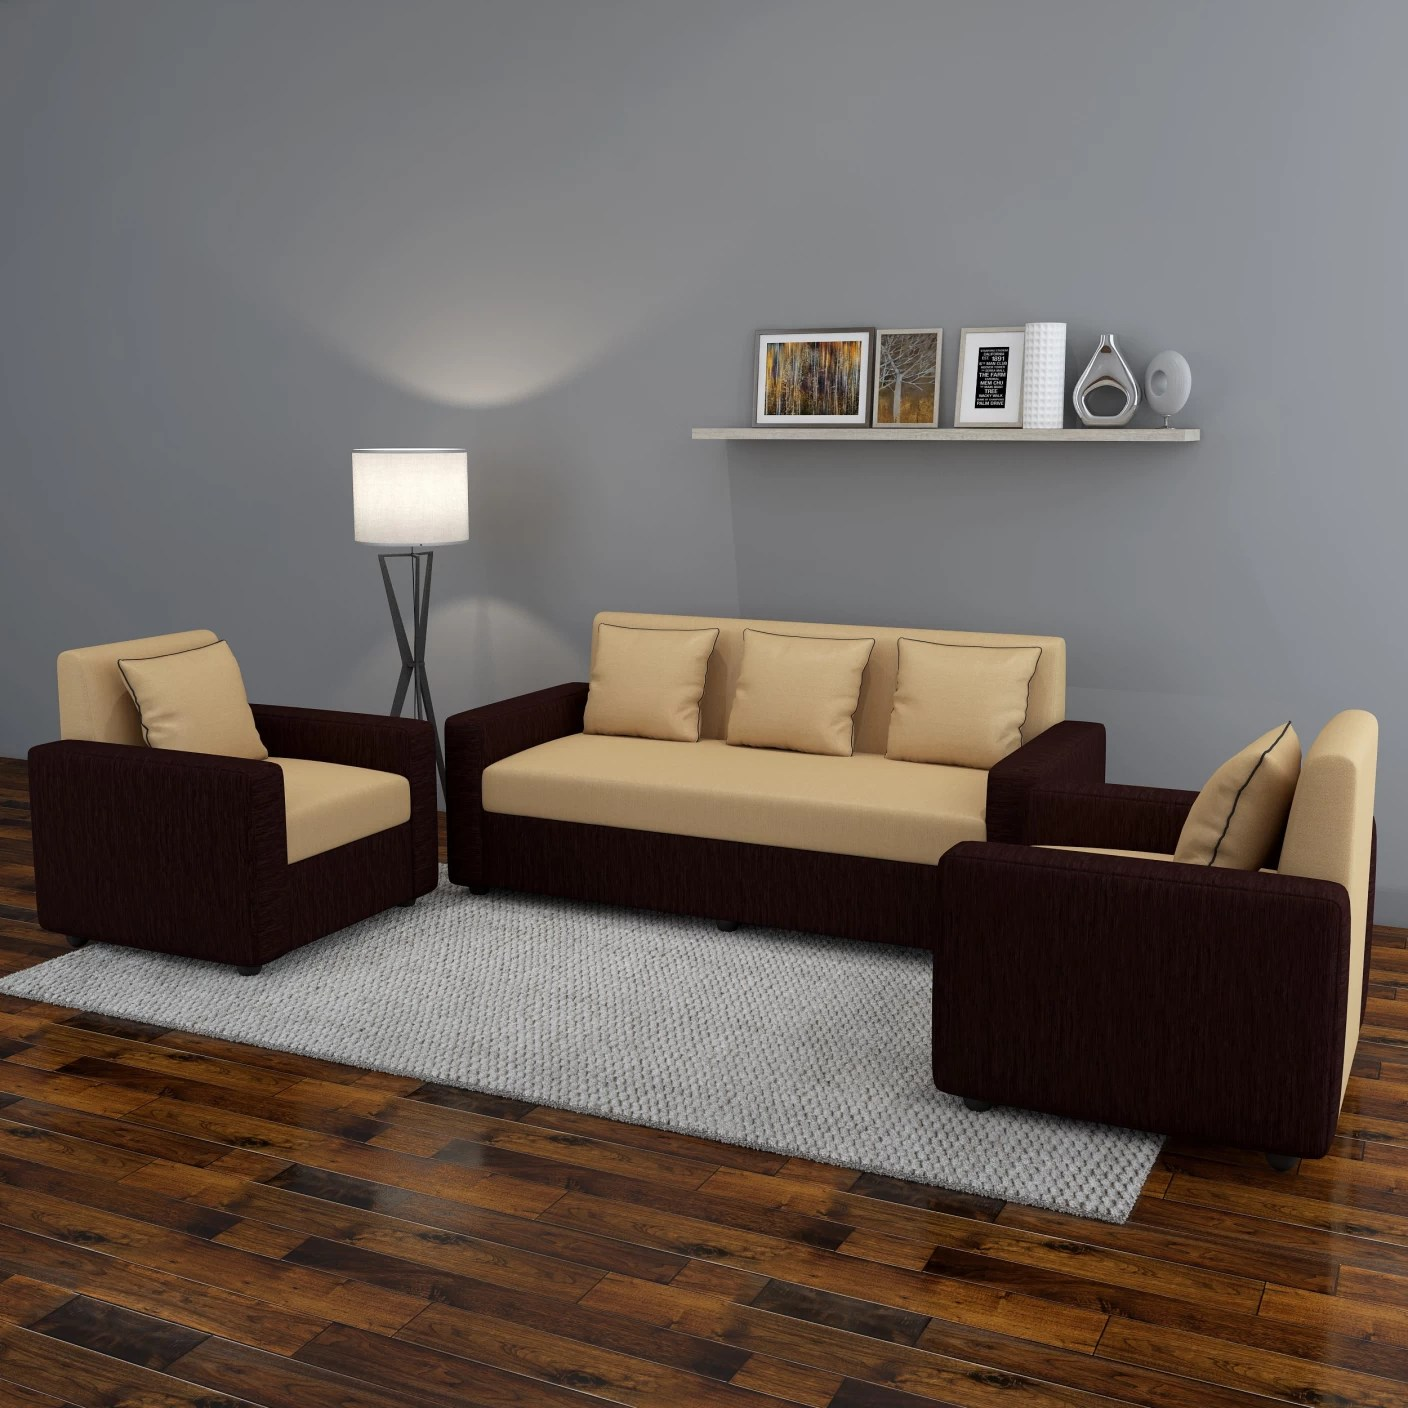 Sofa Set Price In Jagdalpur Bharat Lifestyle Tulip311 Fabric 3 43 1 43 1 Brown Sofa Set